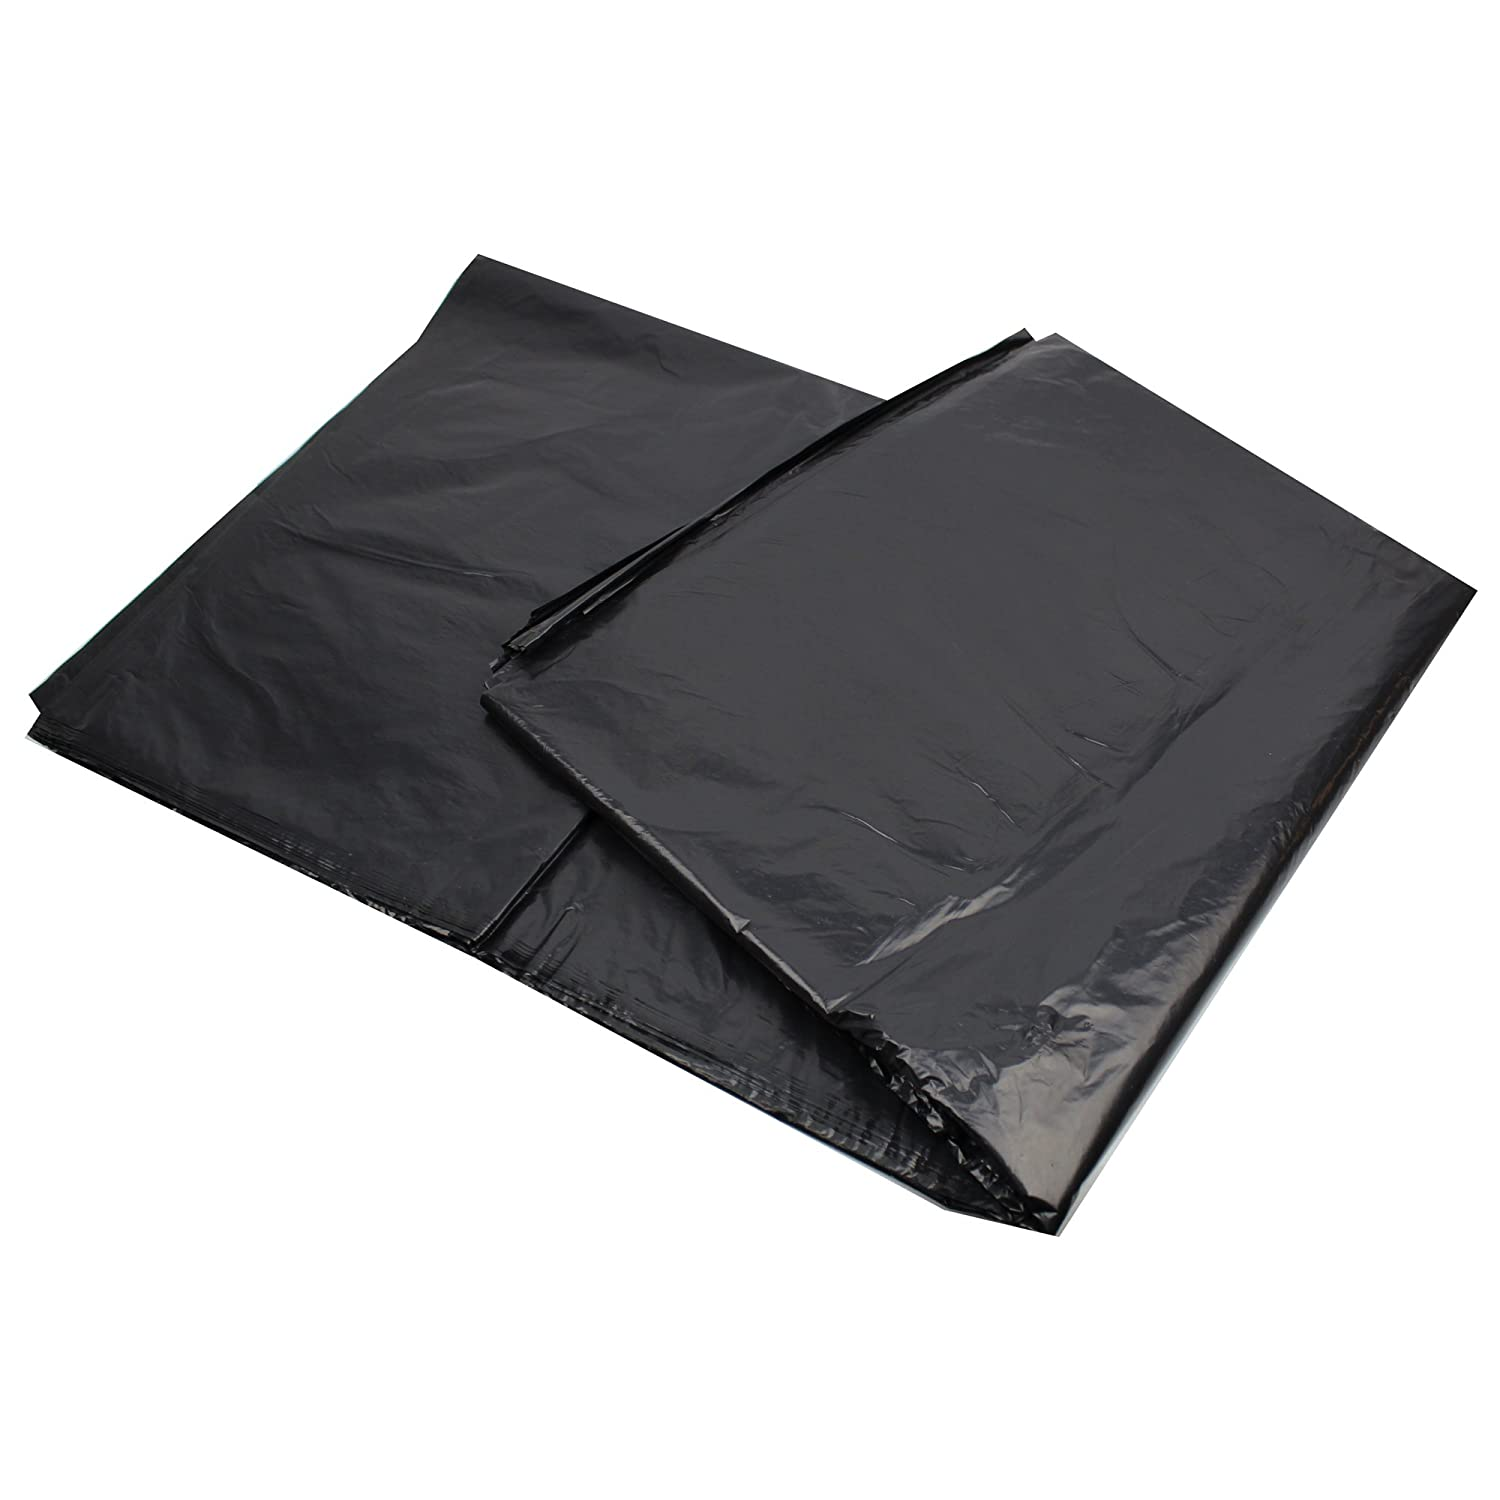 240L Black Wheelie Bin Liners/Bags - Pack of 25 refuse sacks - Strong professional black - ENSA 12kg Auntie Morags